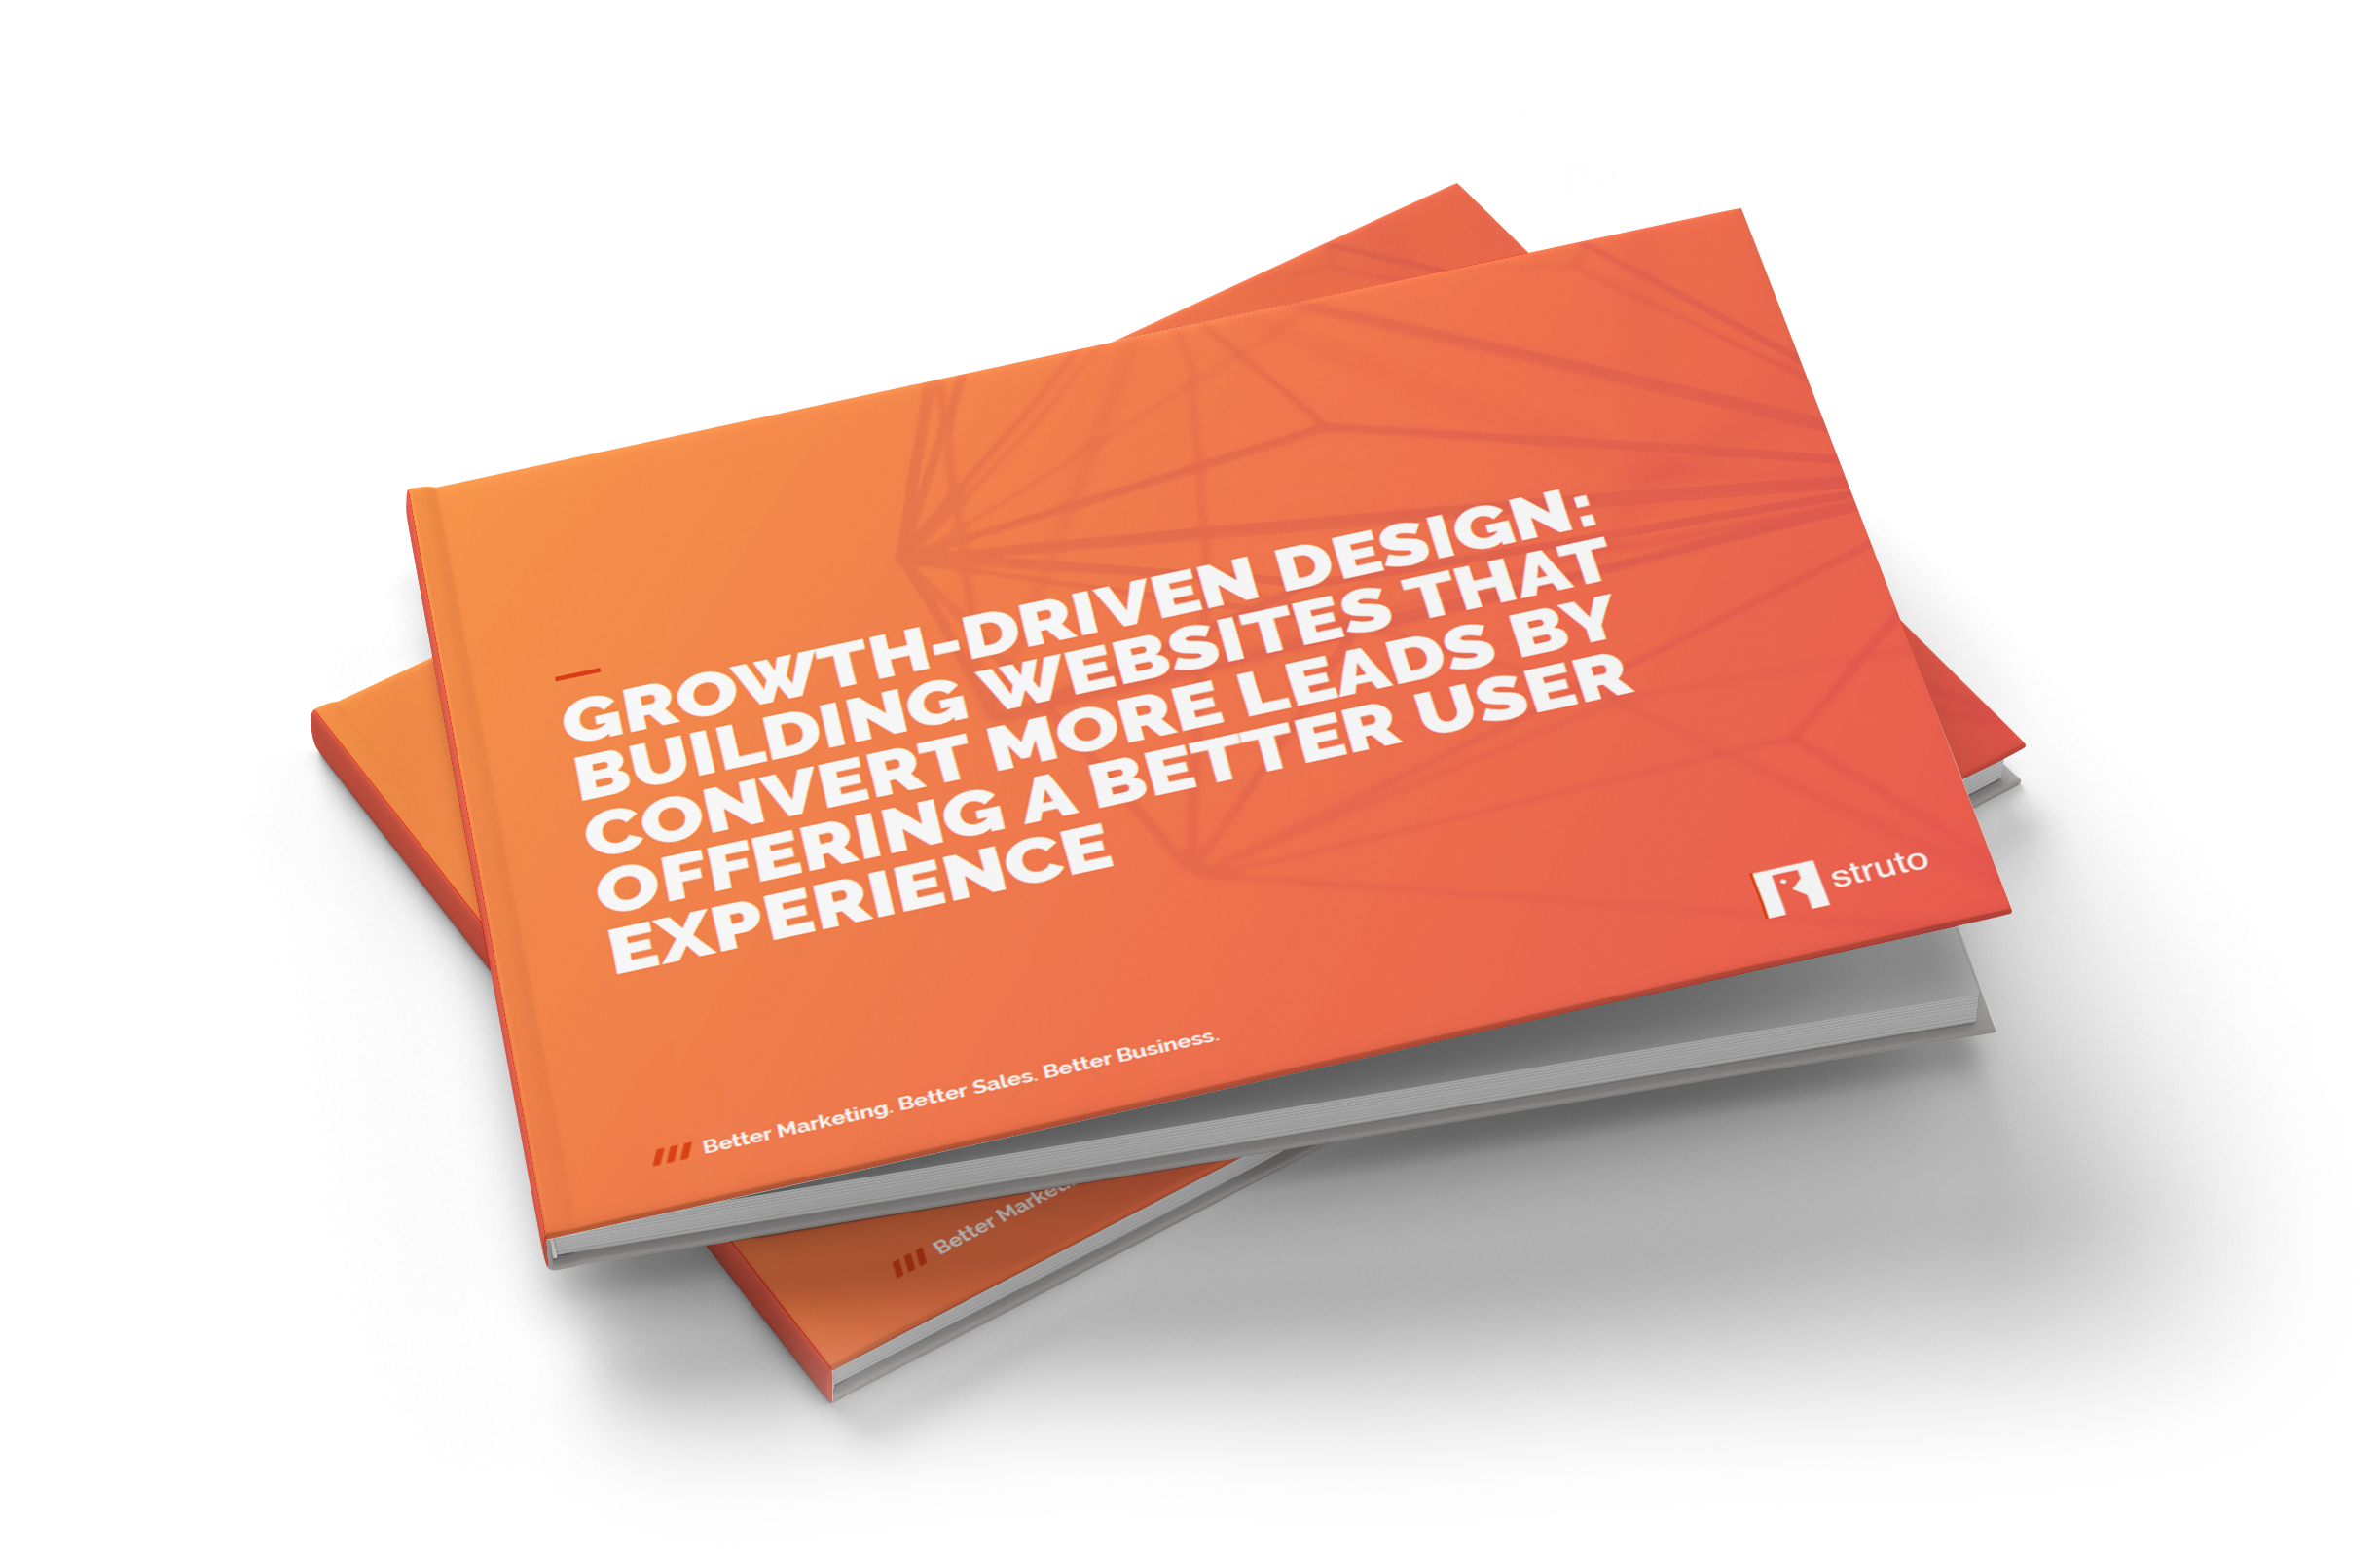 Convert more leads than ever before with growth-driven design